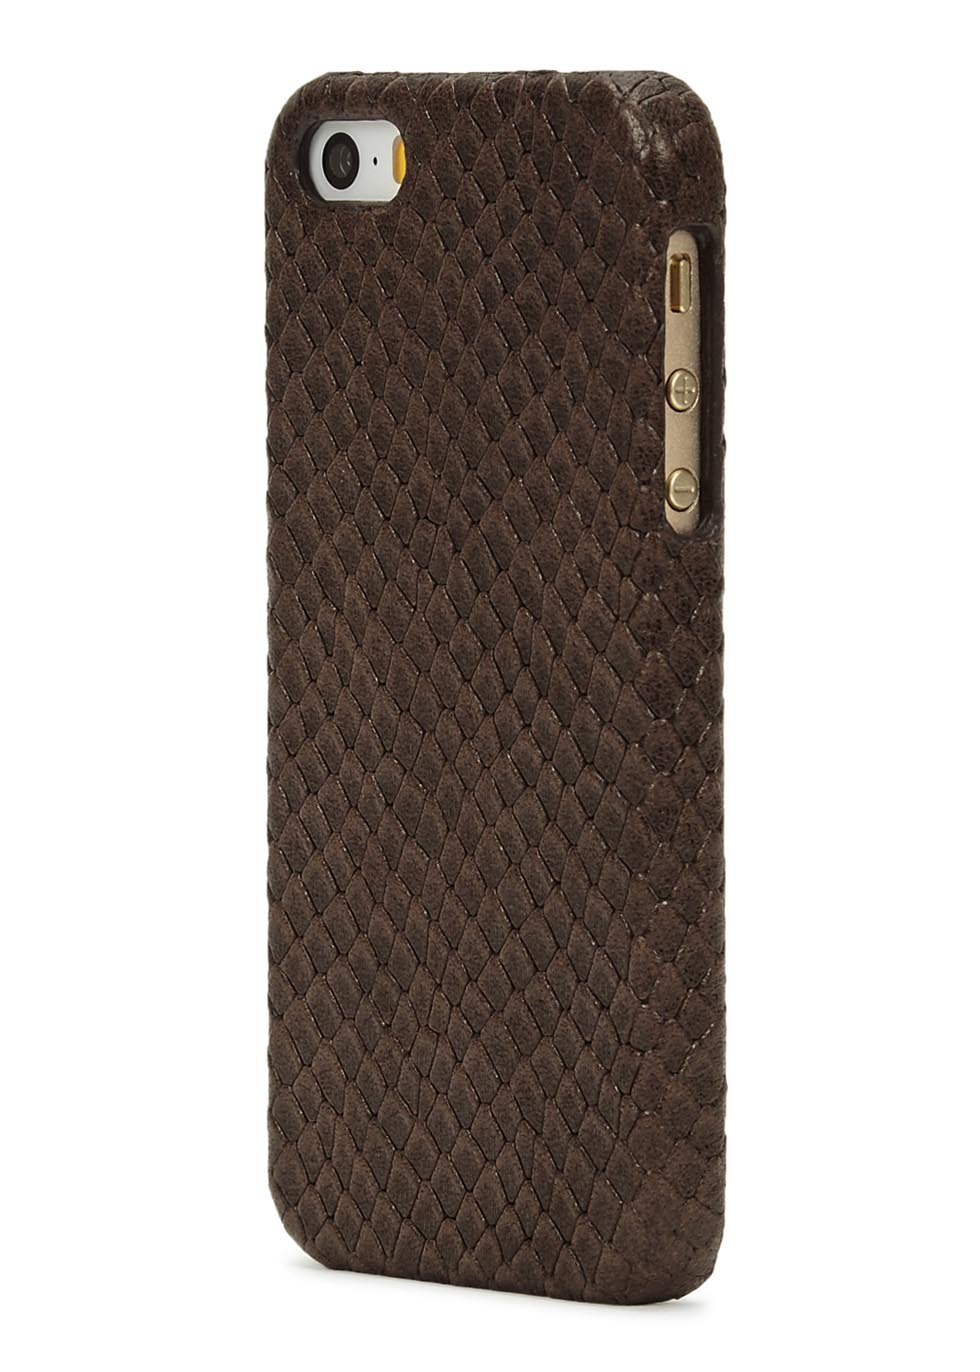 Cobra-effect leather iPhone 5/5S/SE case - The Case Factory